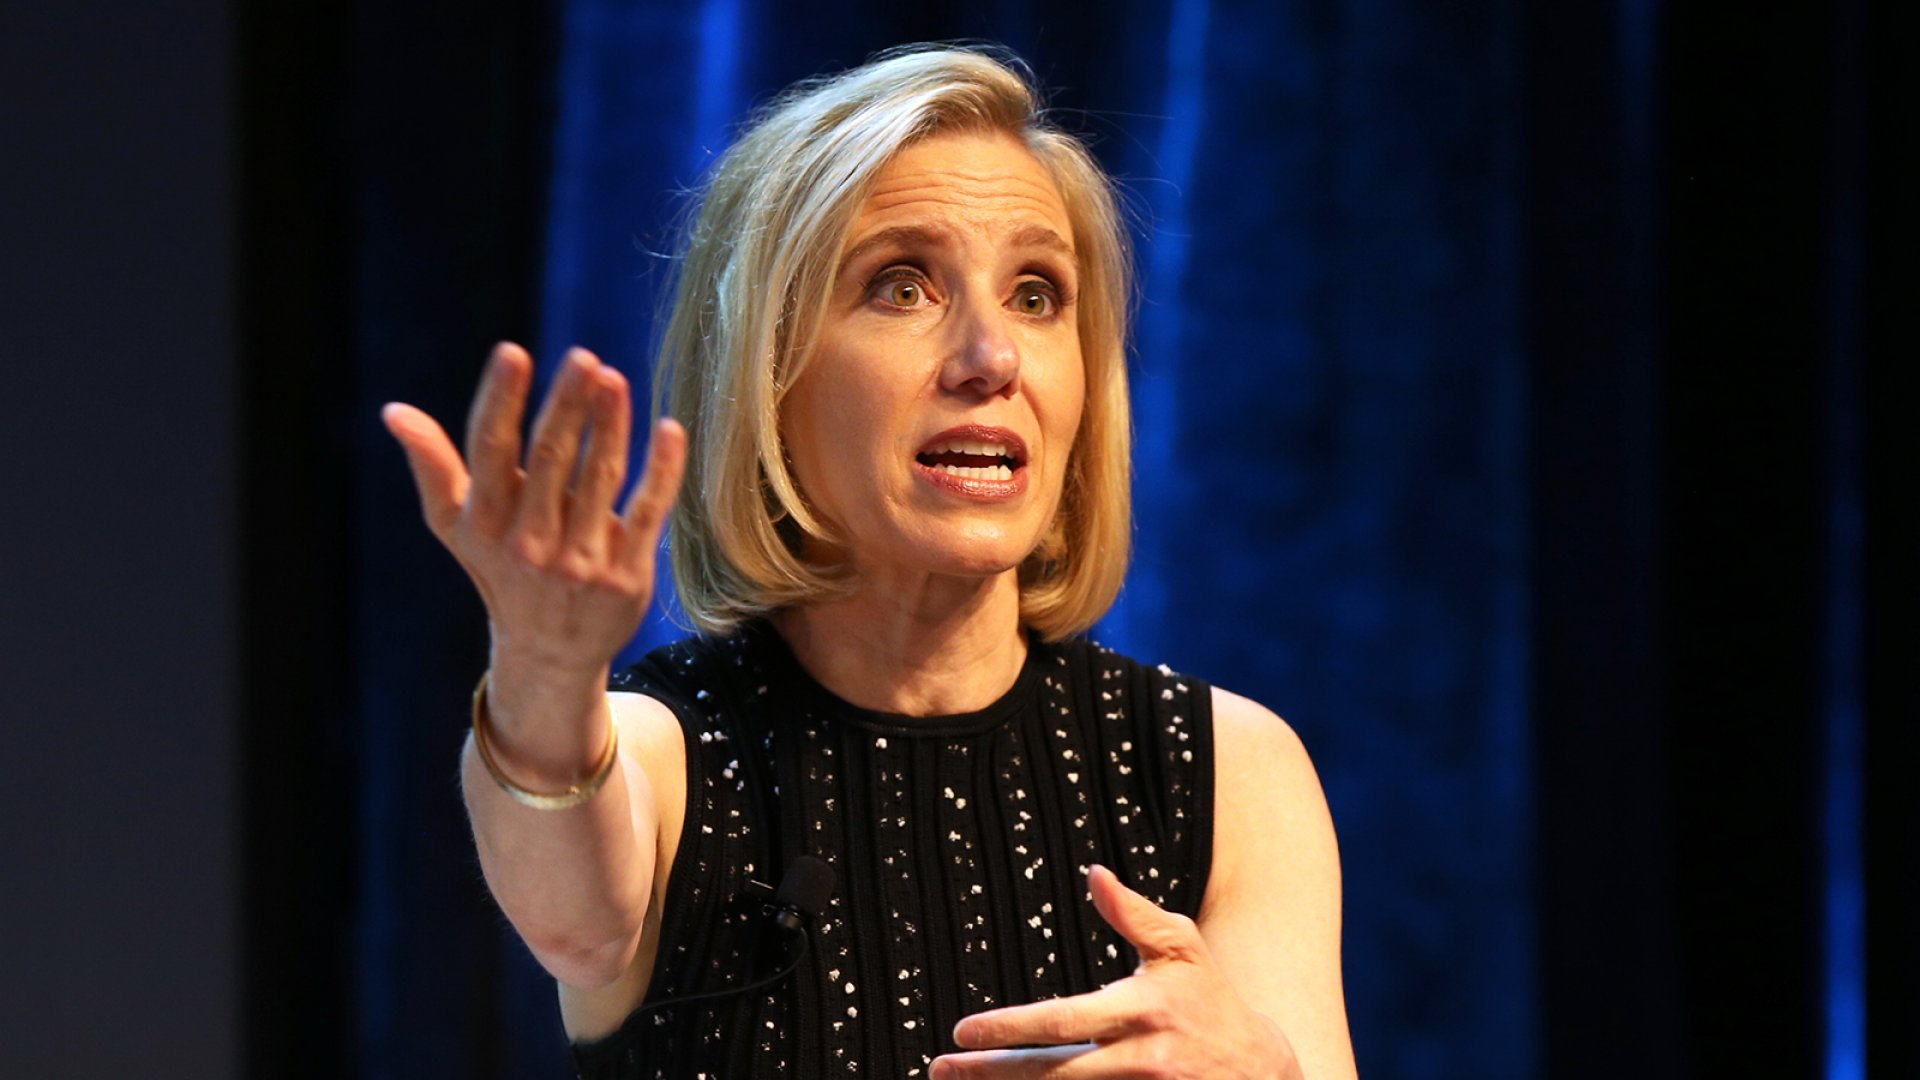 Marne Levine, the COO of Instagram.